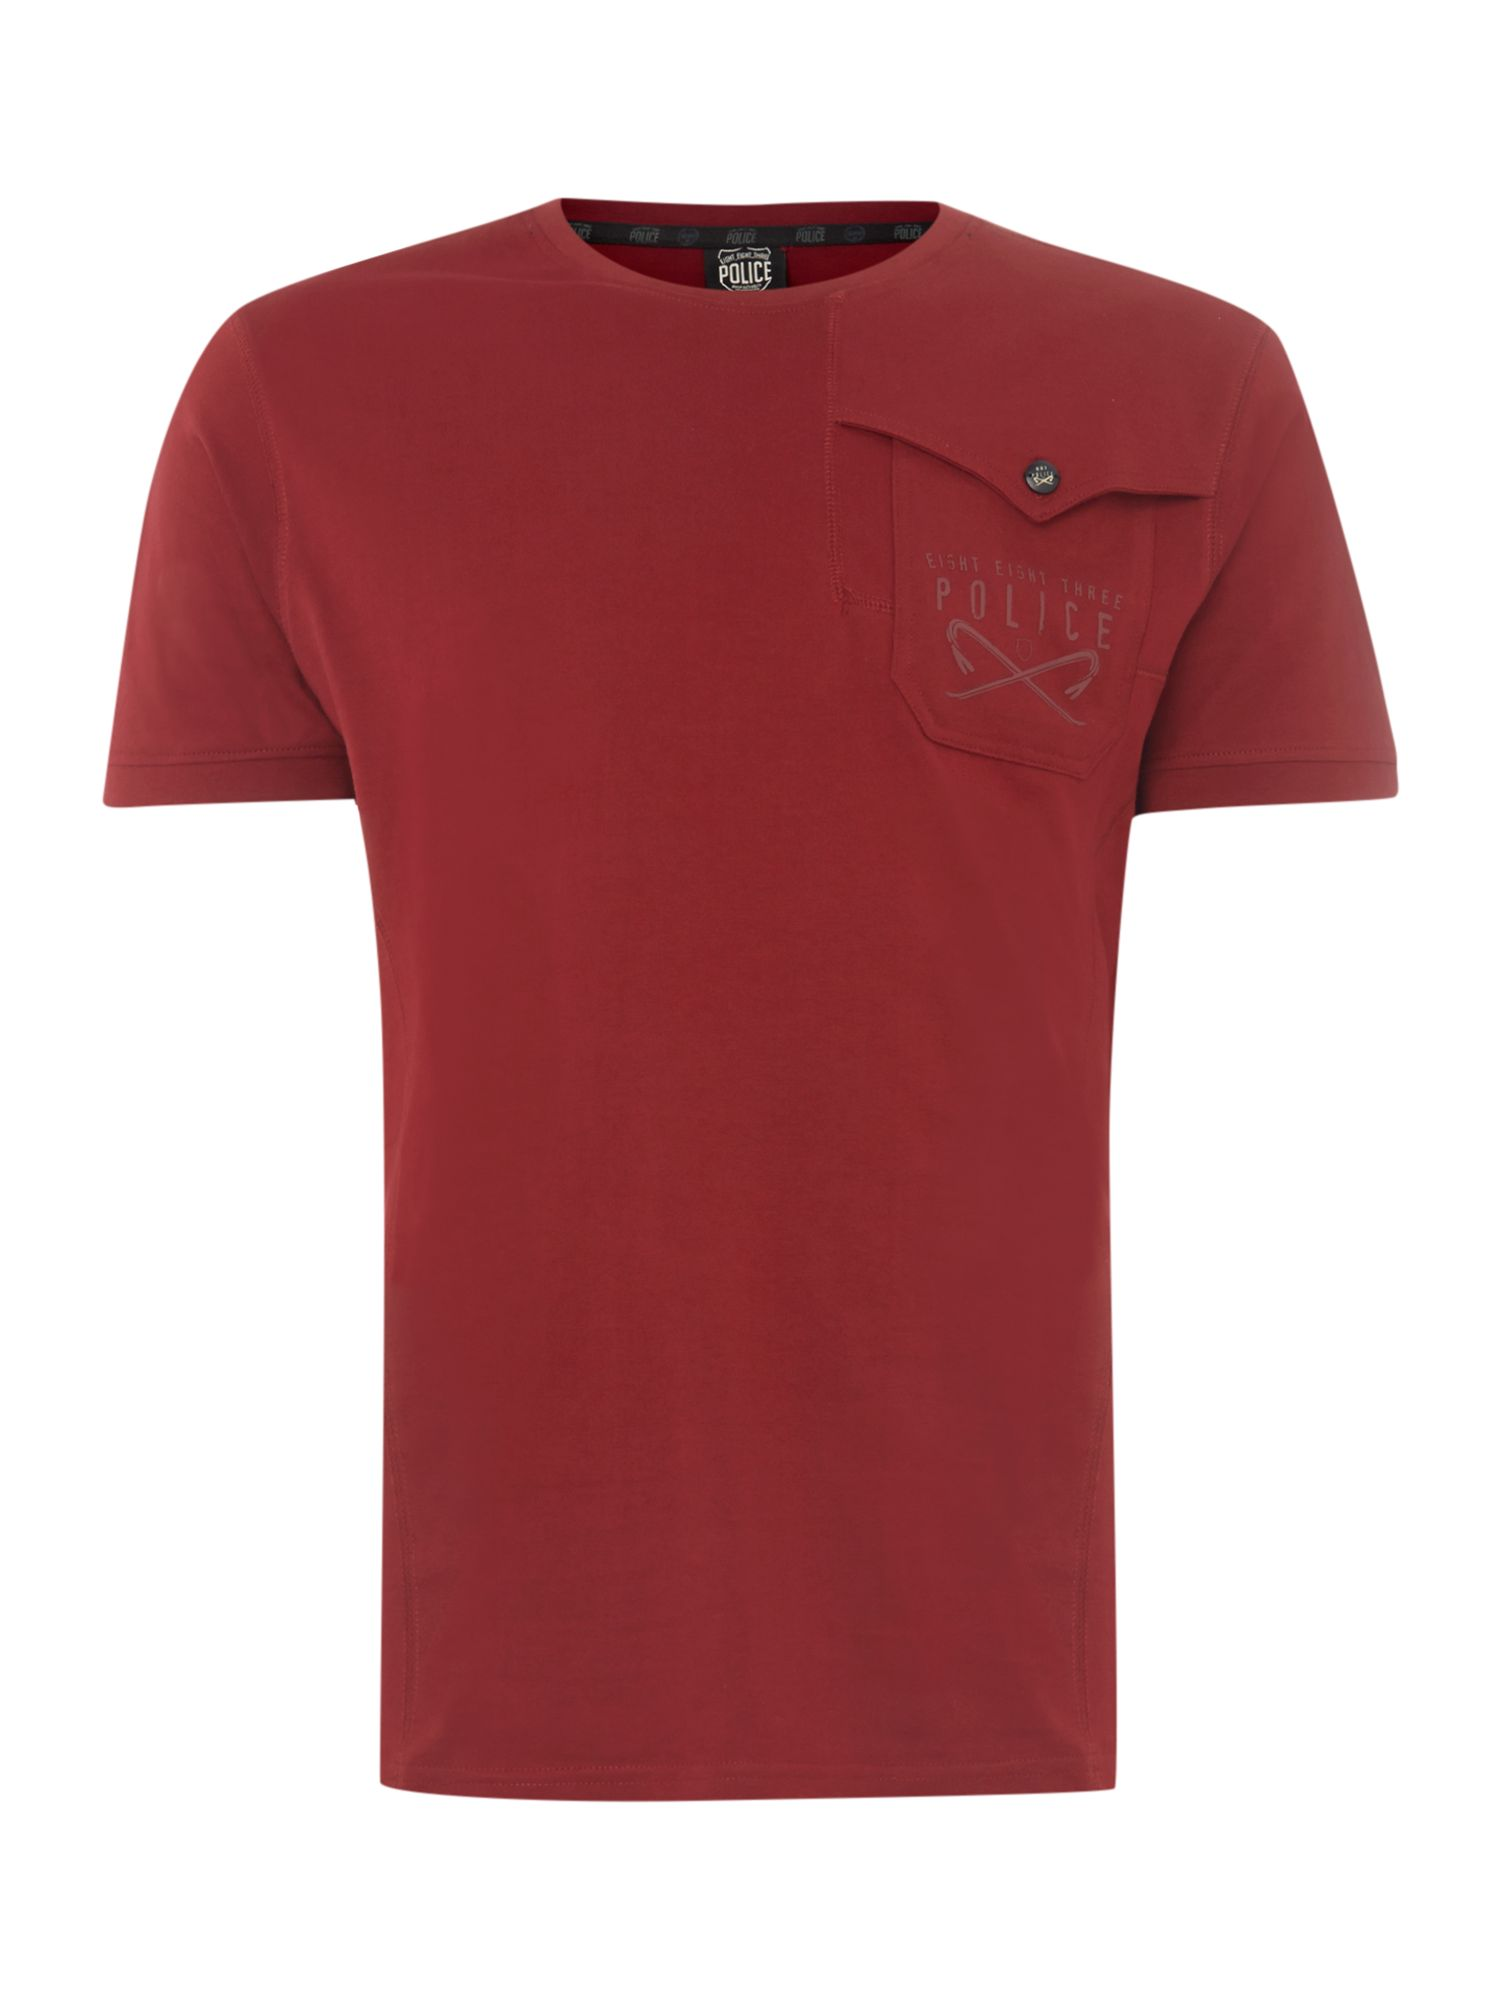 One pocket short sleeve t-shirt